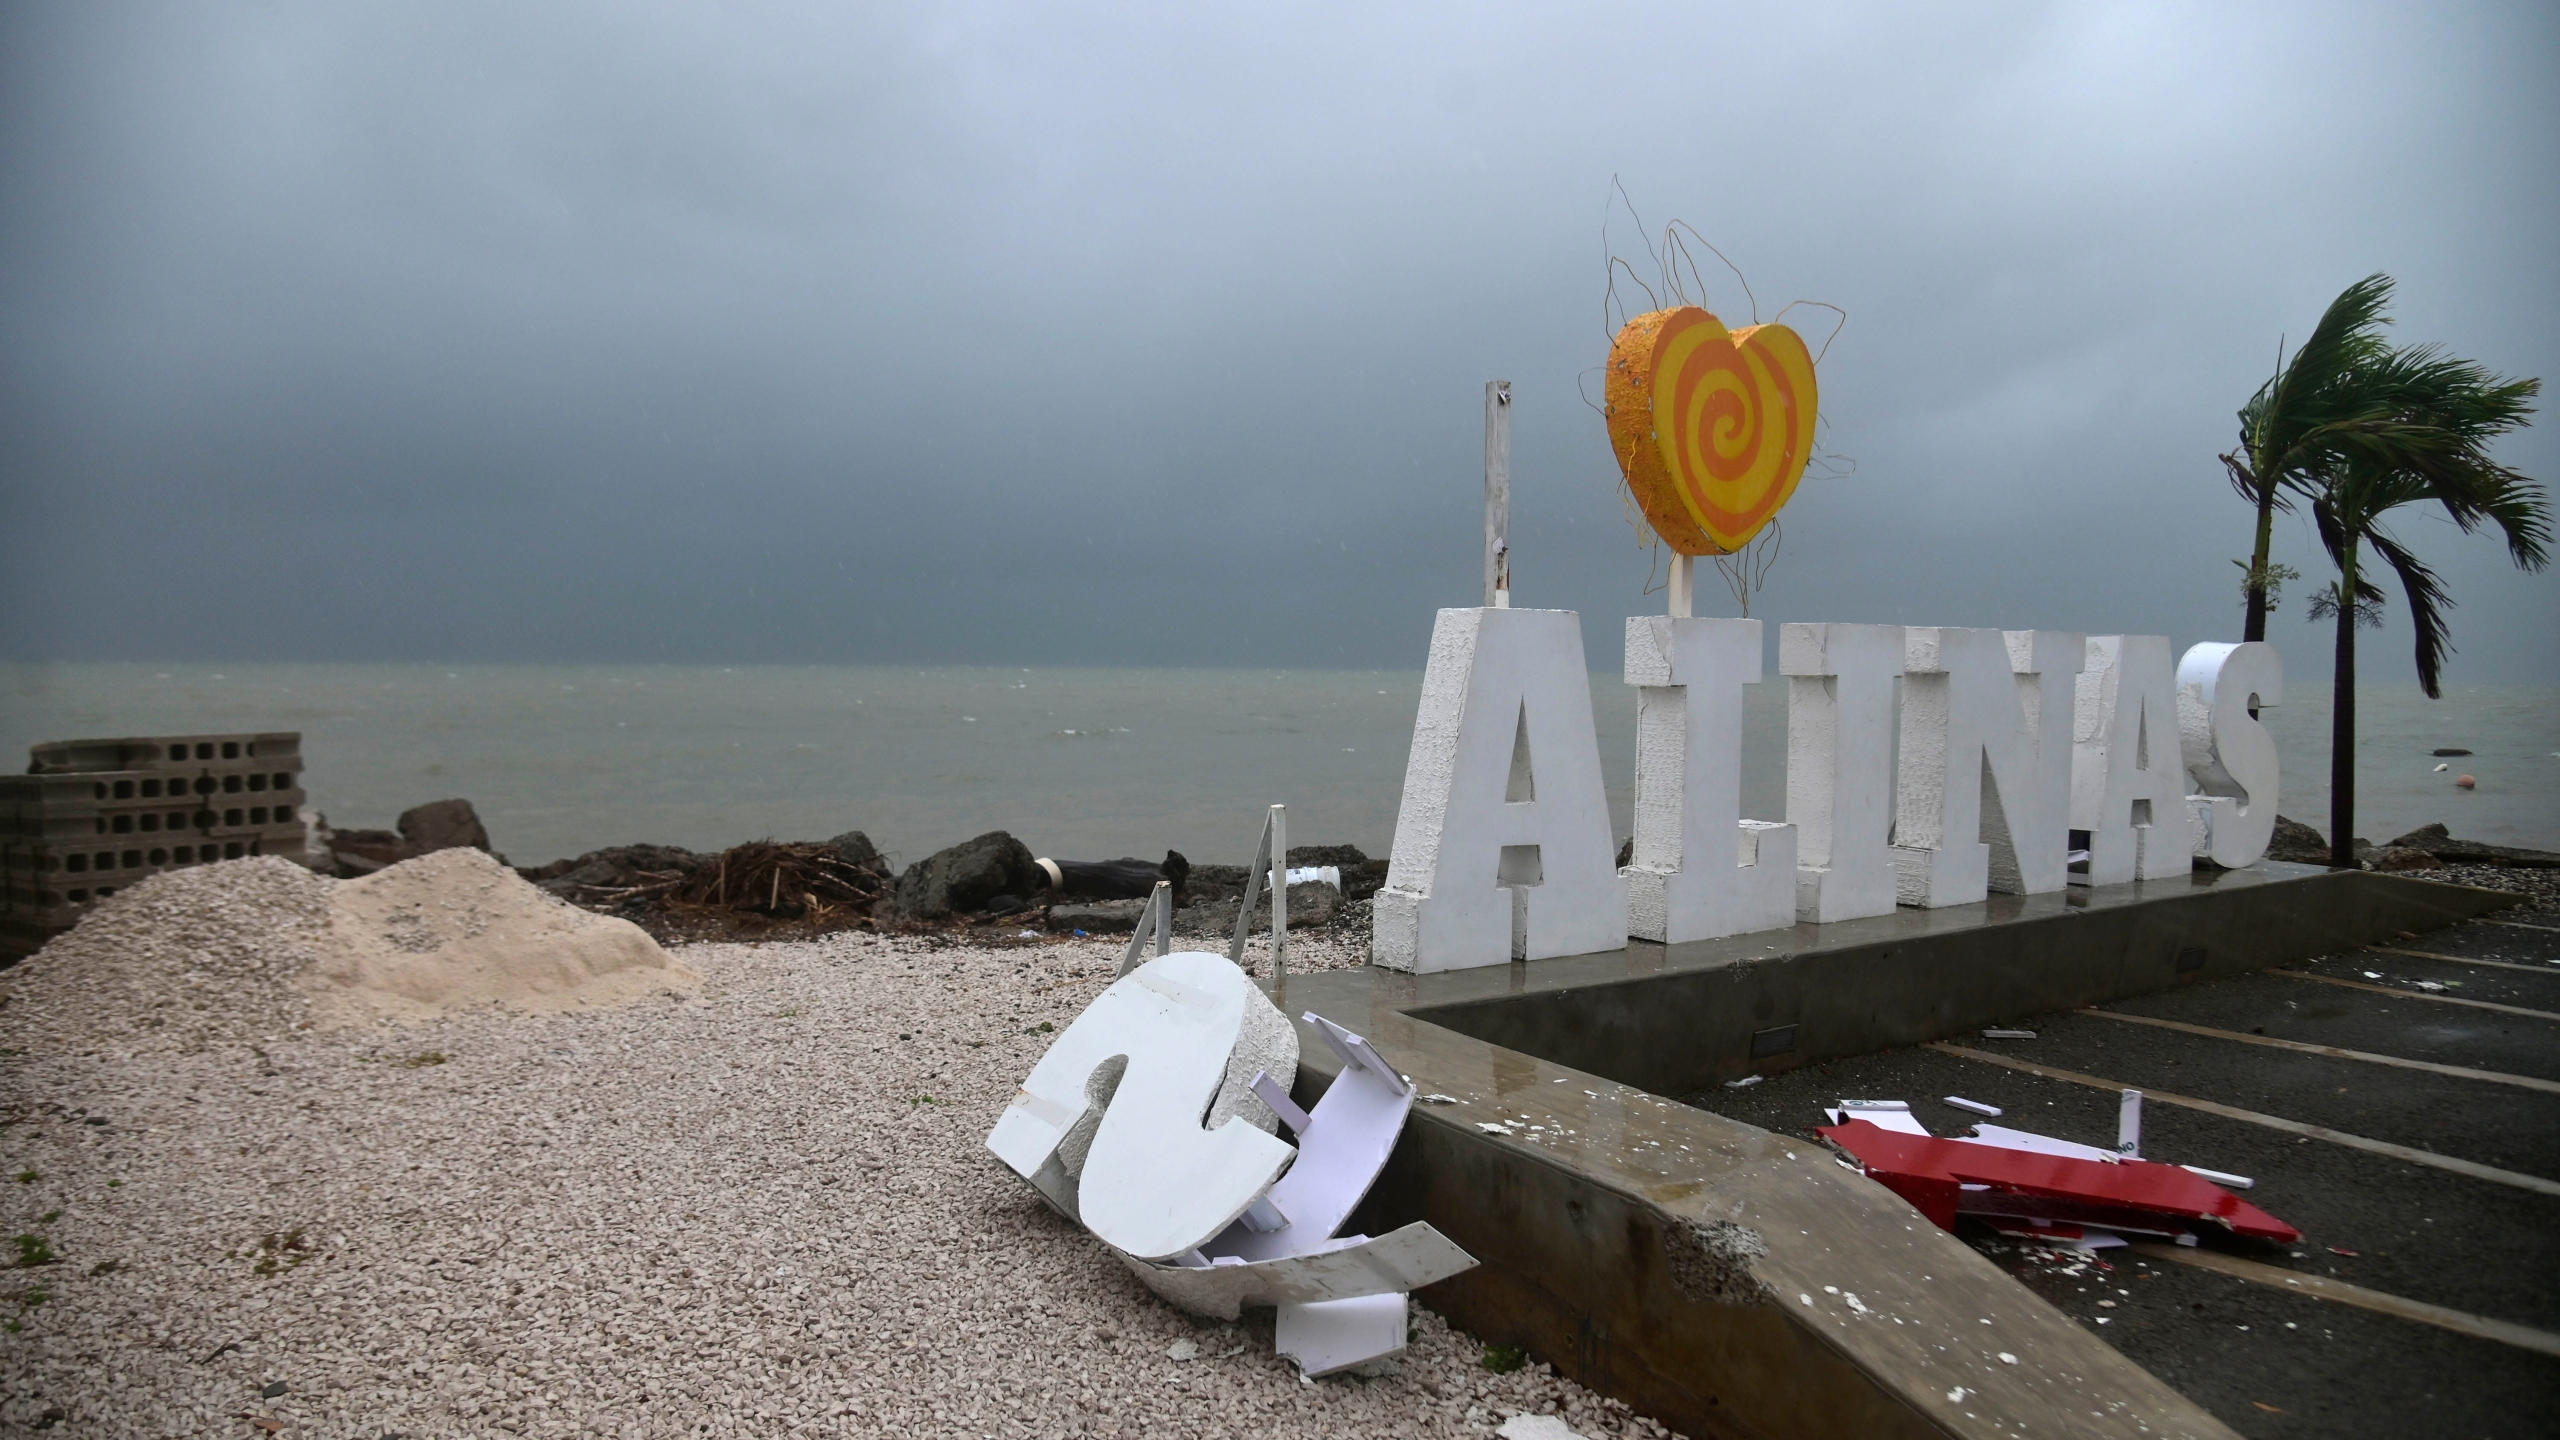 Remnants of a city sign lay on the beach damaged by Tropical Storm Laura in Salinas, Puerto Rico, on Aug. 22, 2020. (AP Photo/Carlos Giusti)